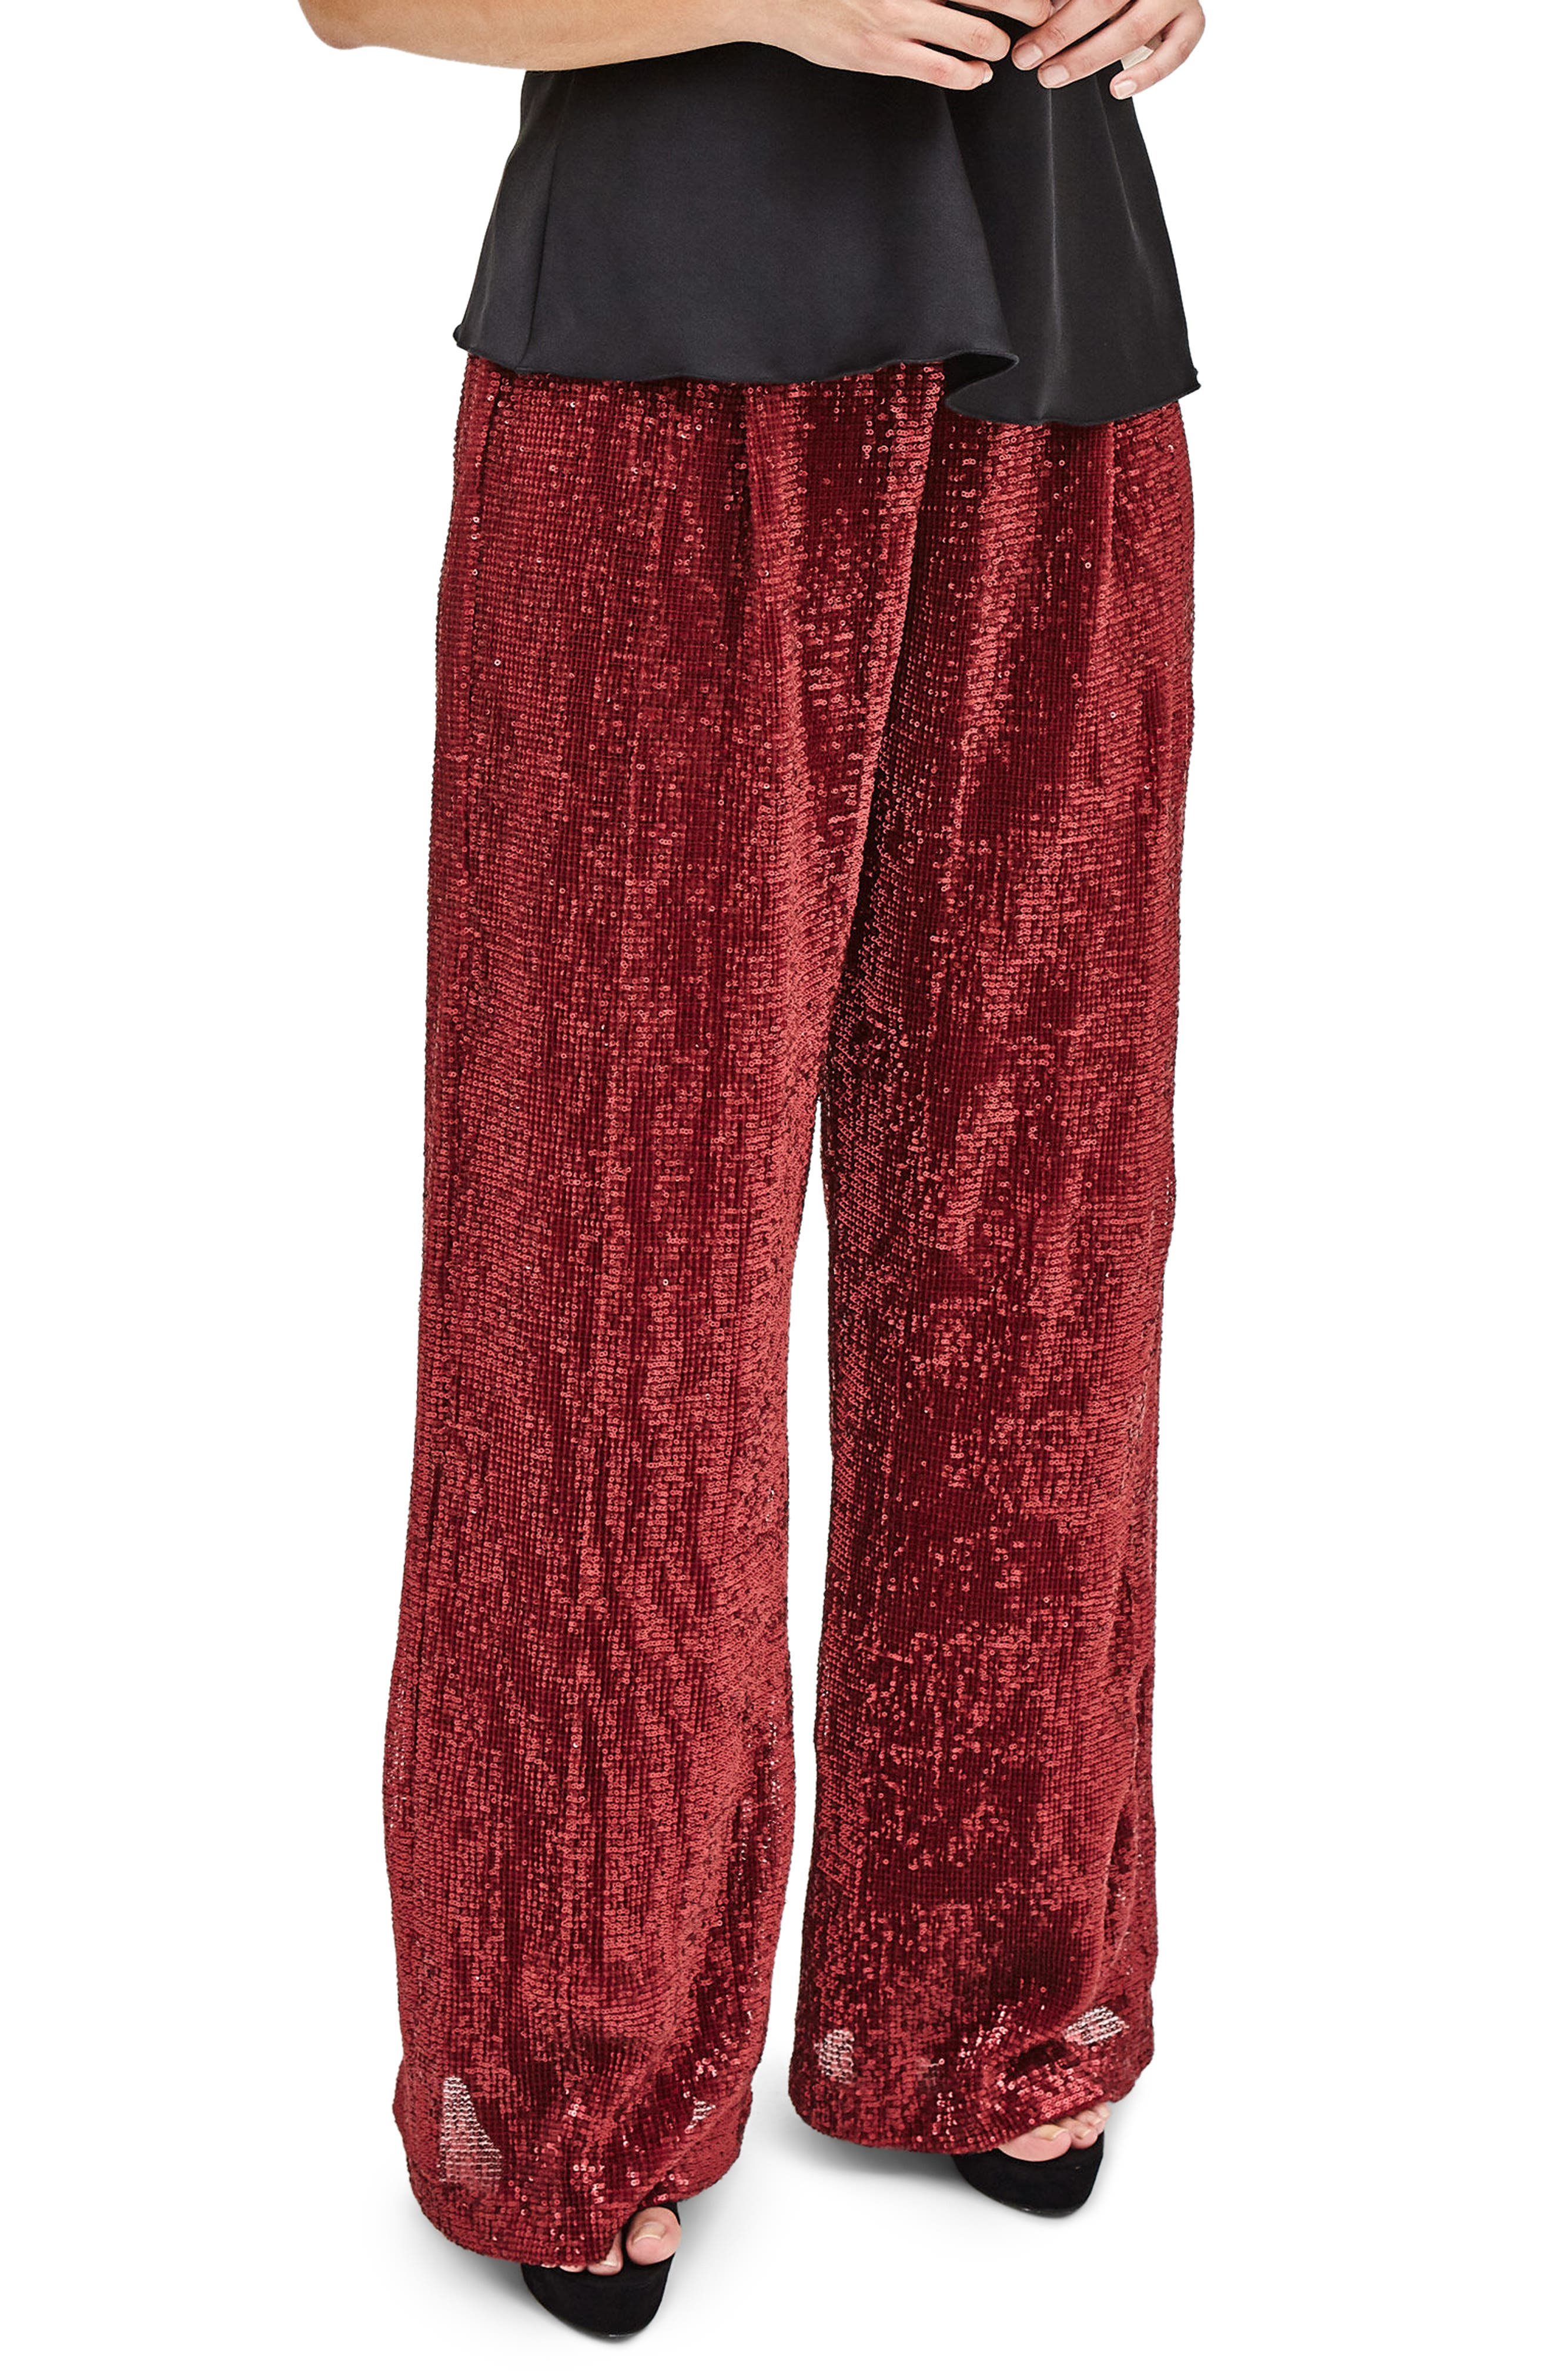 Red Sequin Trousers,                         Main,                         color, Red